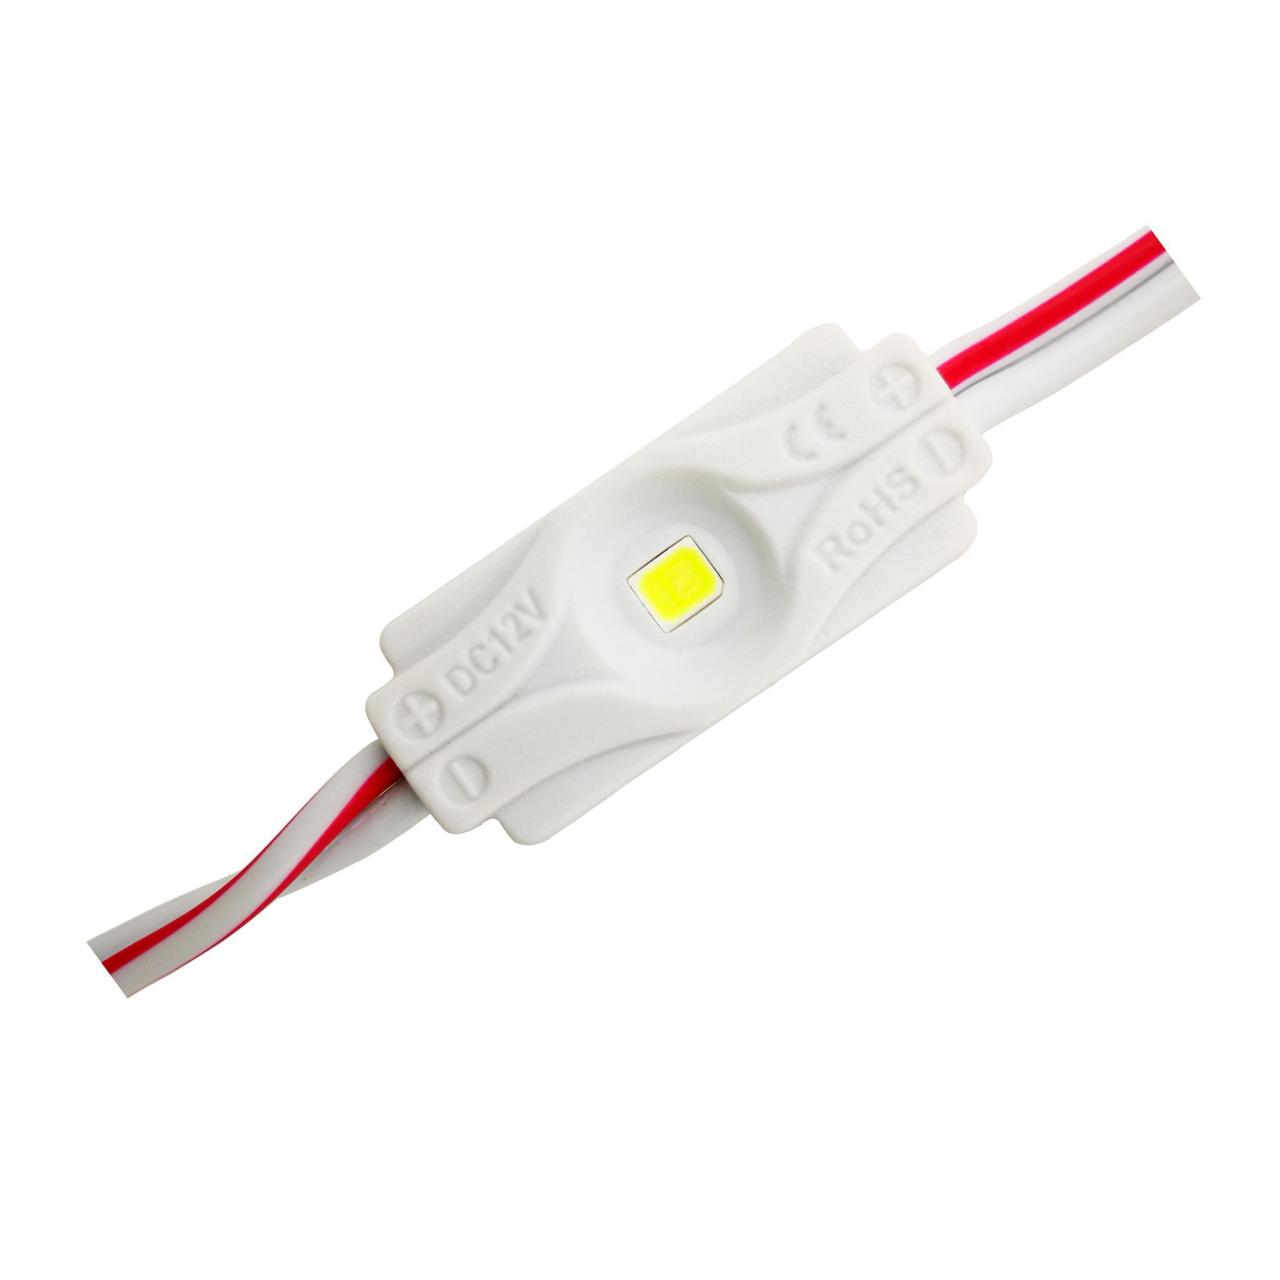 Buy cheap C181 2835 Mini letter back-lit signage module without lens 1led from wholesalers